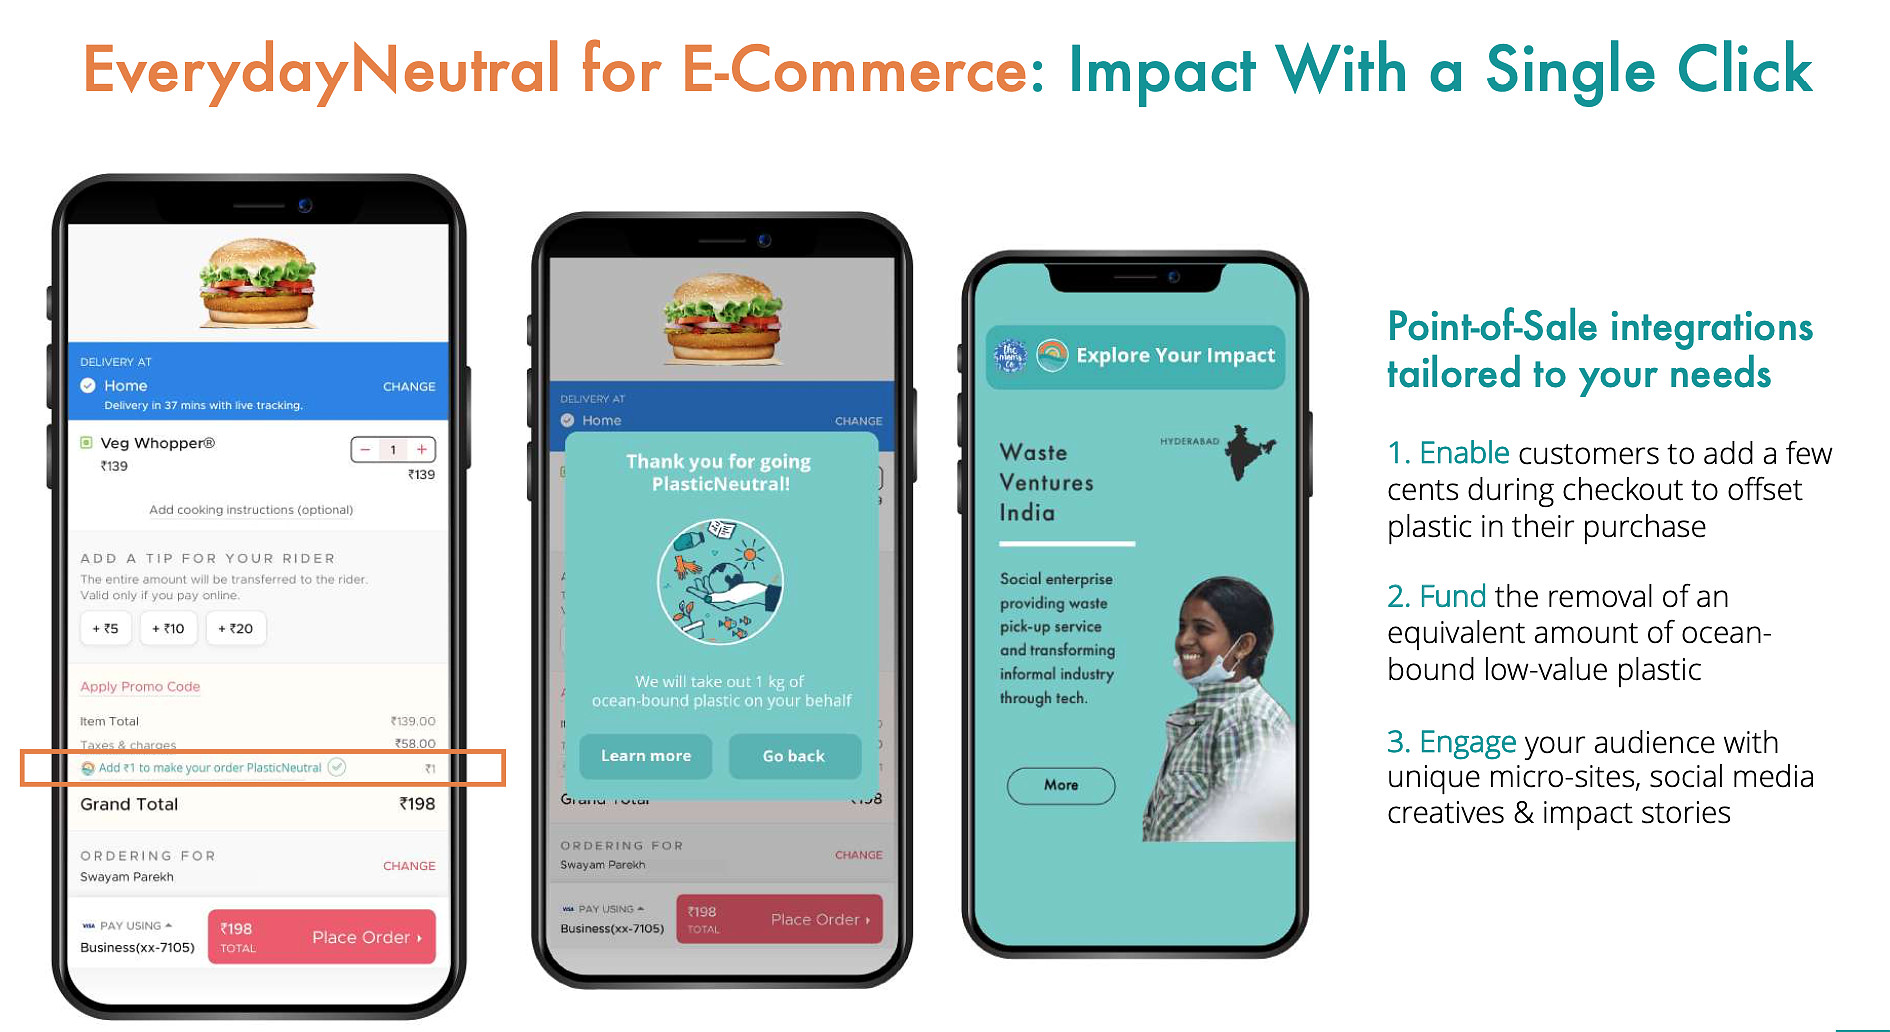 EverydayNeutral for E-Commerce, Point-of-sale integrations by rePurpose Global to make a purchase green